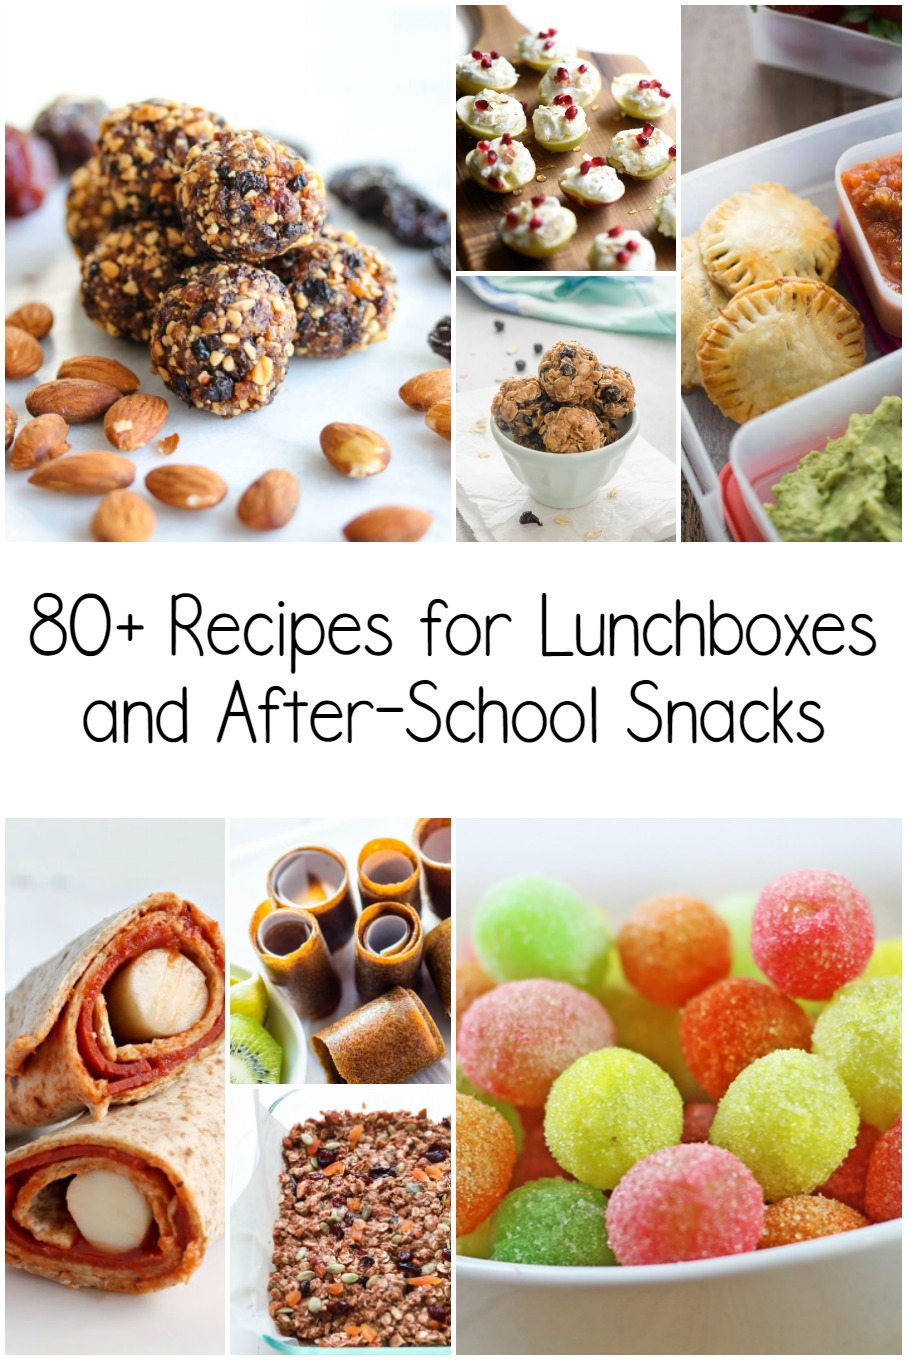 It's back-to-school time! I've compiled more than 80 recipes to include in your child's lunchbox, or serve as an after-school snack.